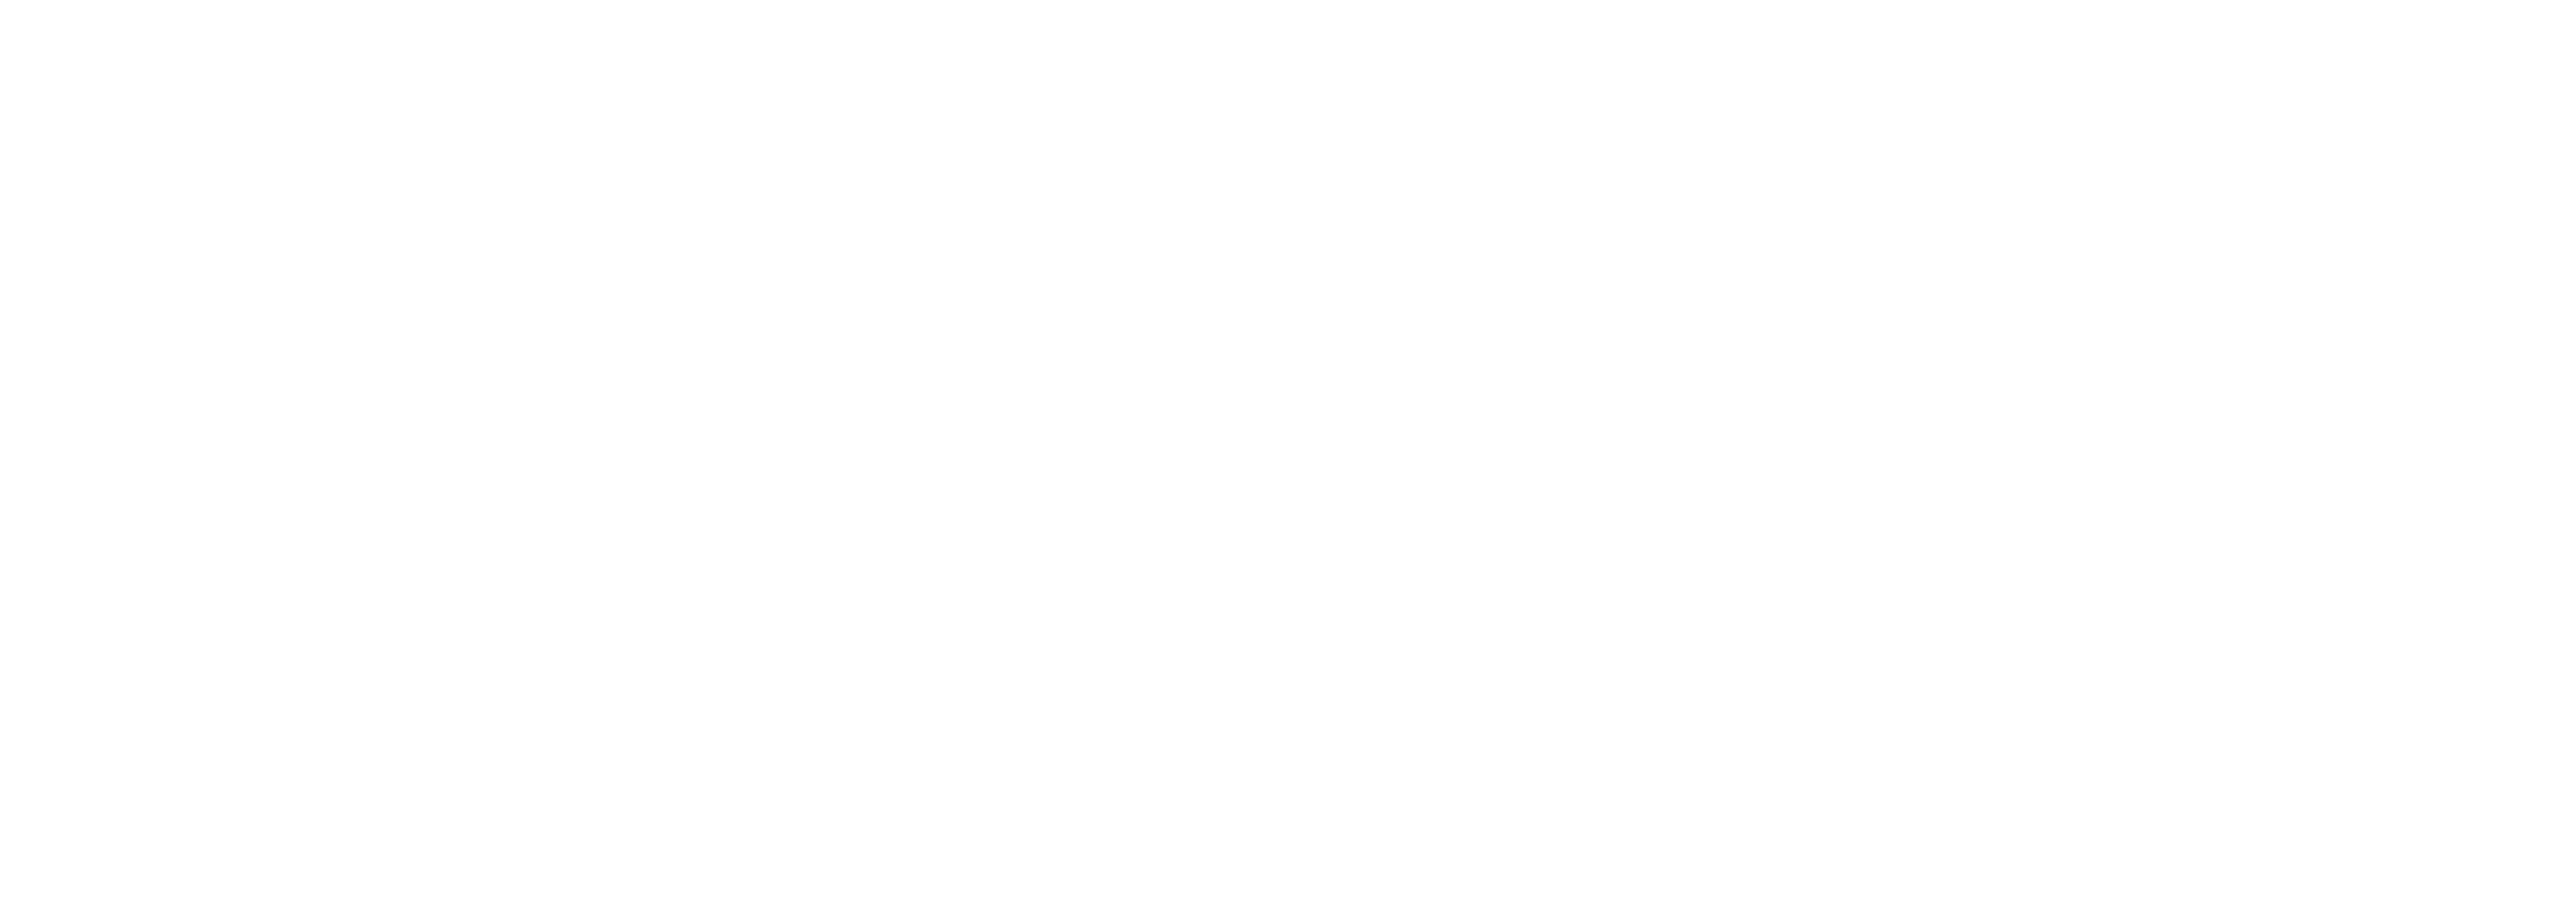 European High Yield